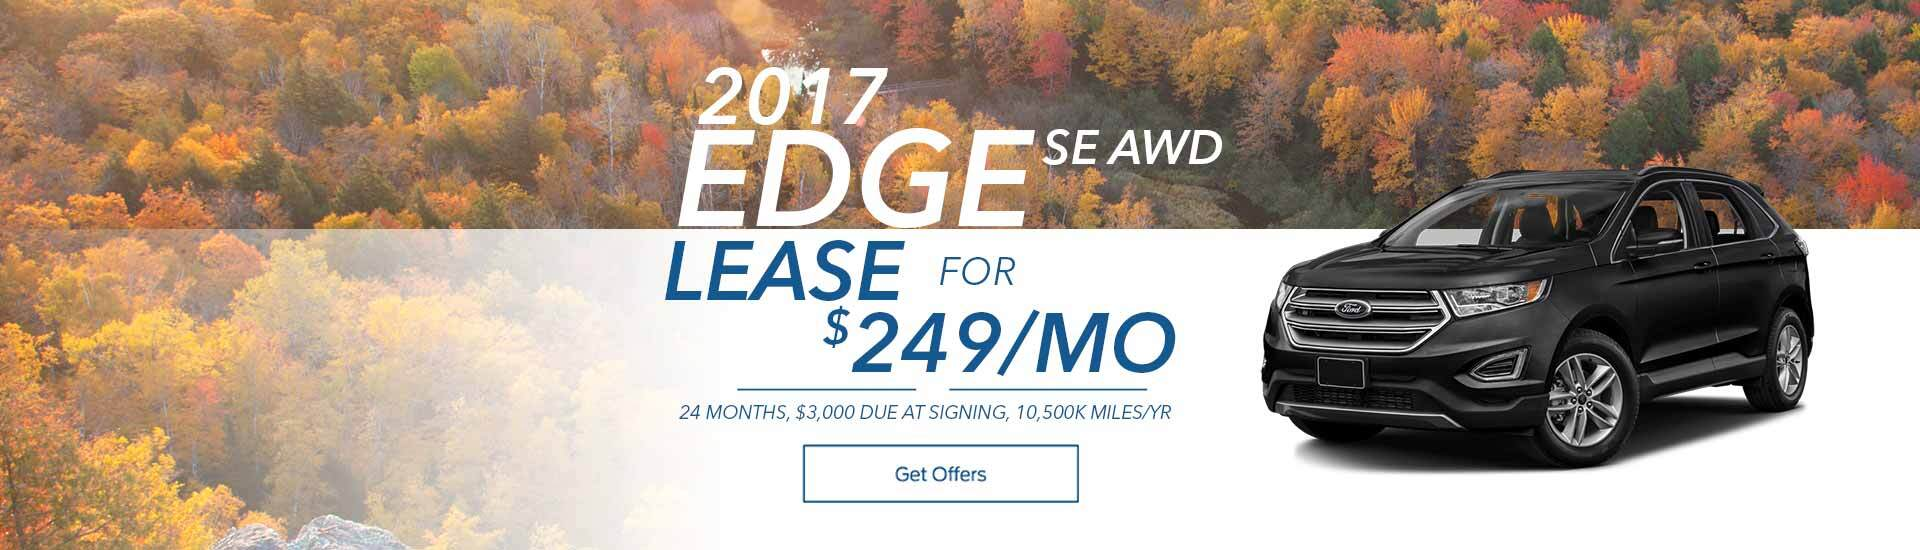 Cole Ford Edge 2017 September Special